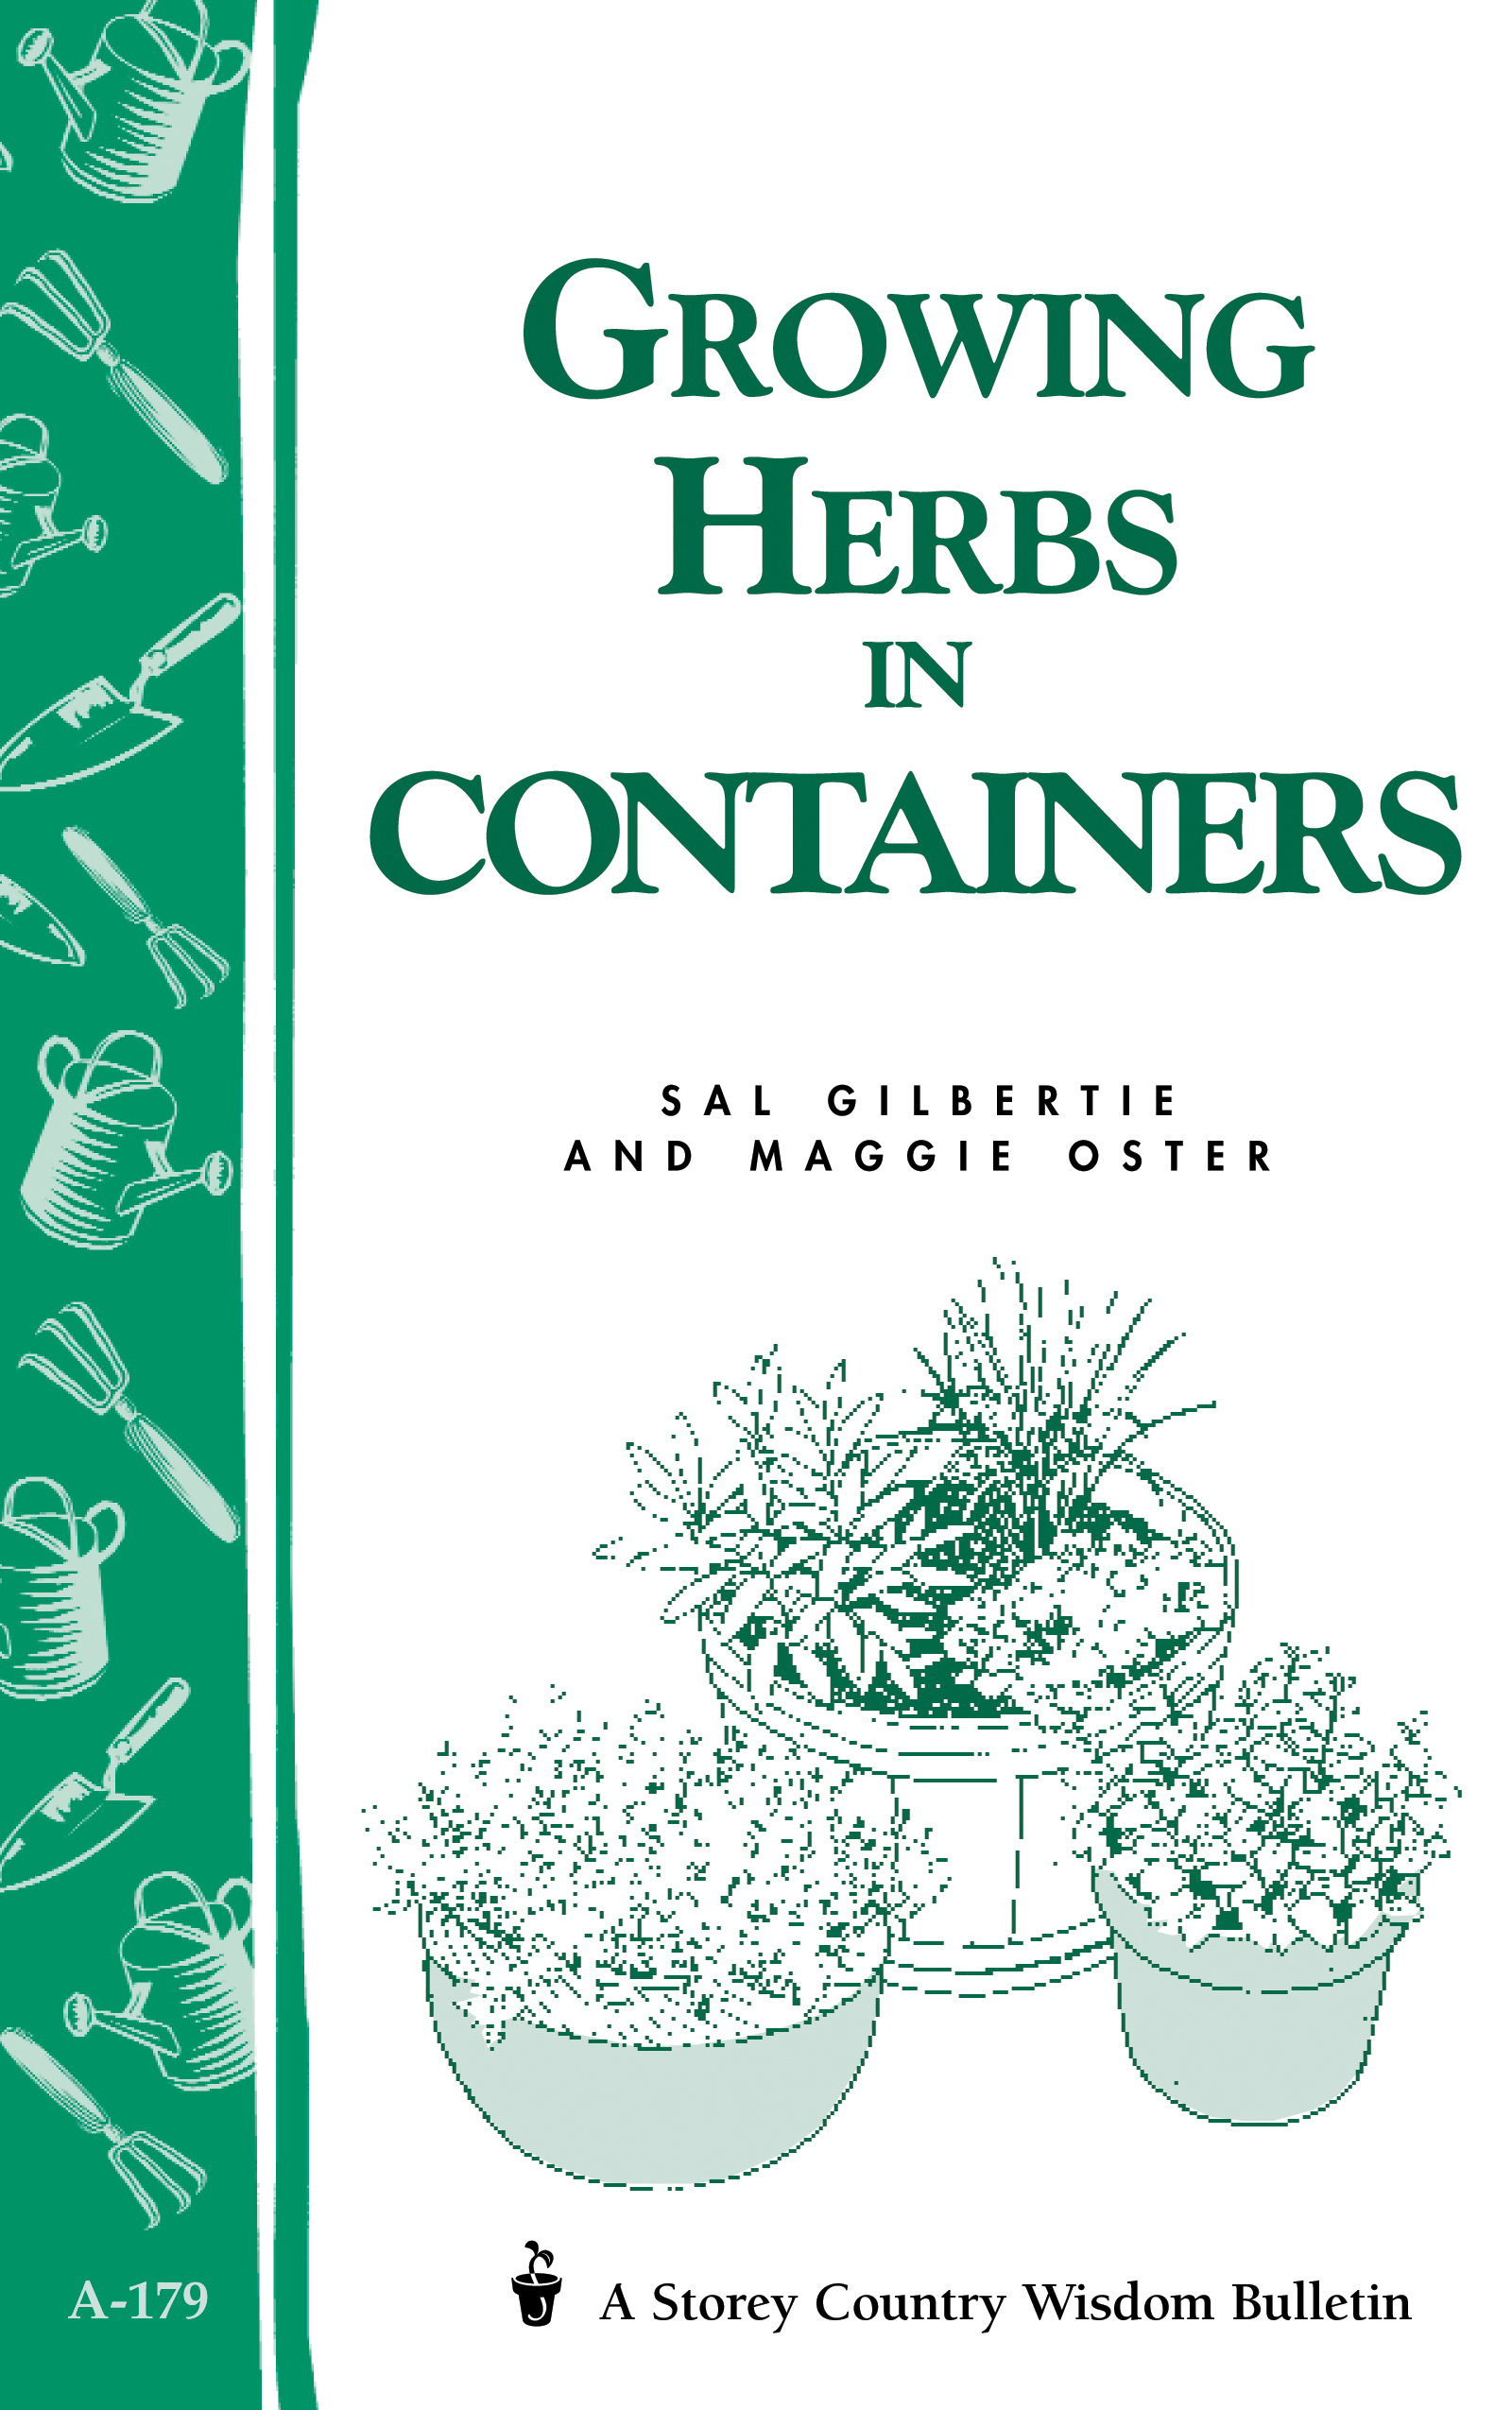 Growing Herbs in Containers Storey's Country Wisdom Bulletin A-179 - Sal Gilbertie